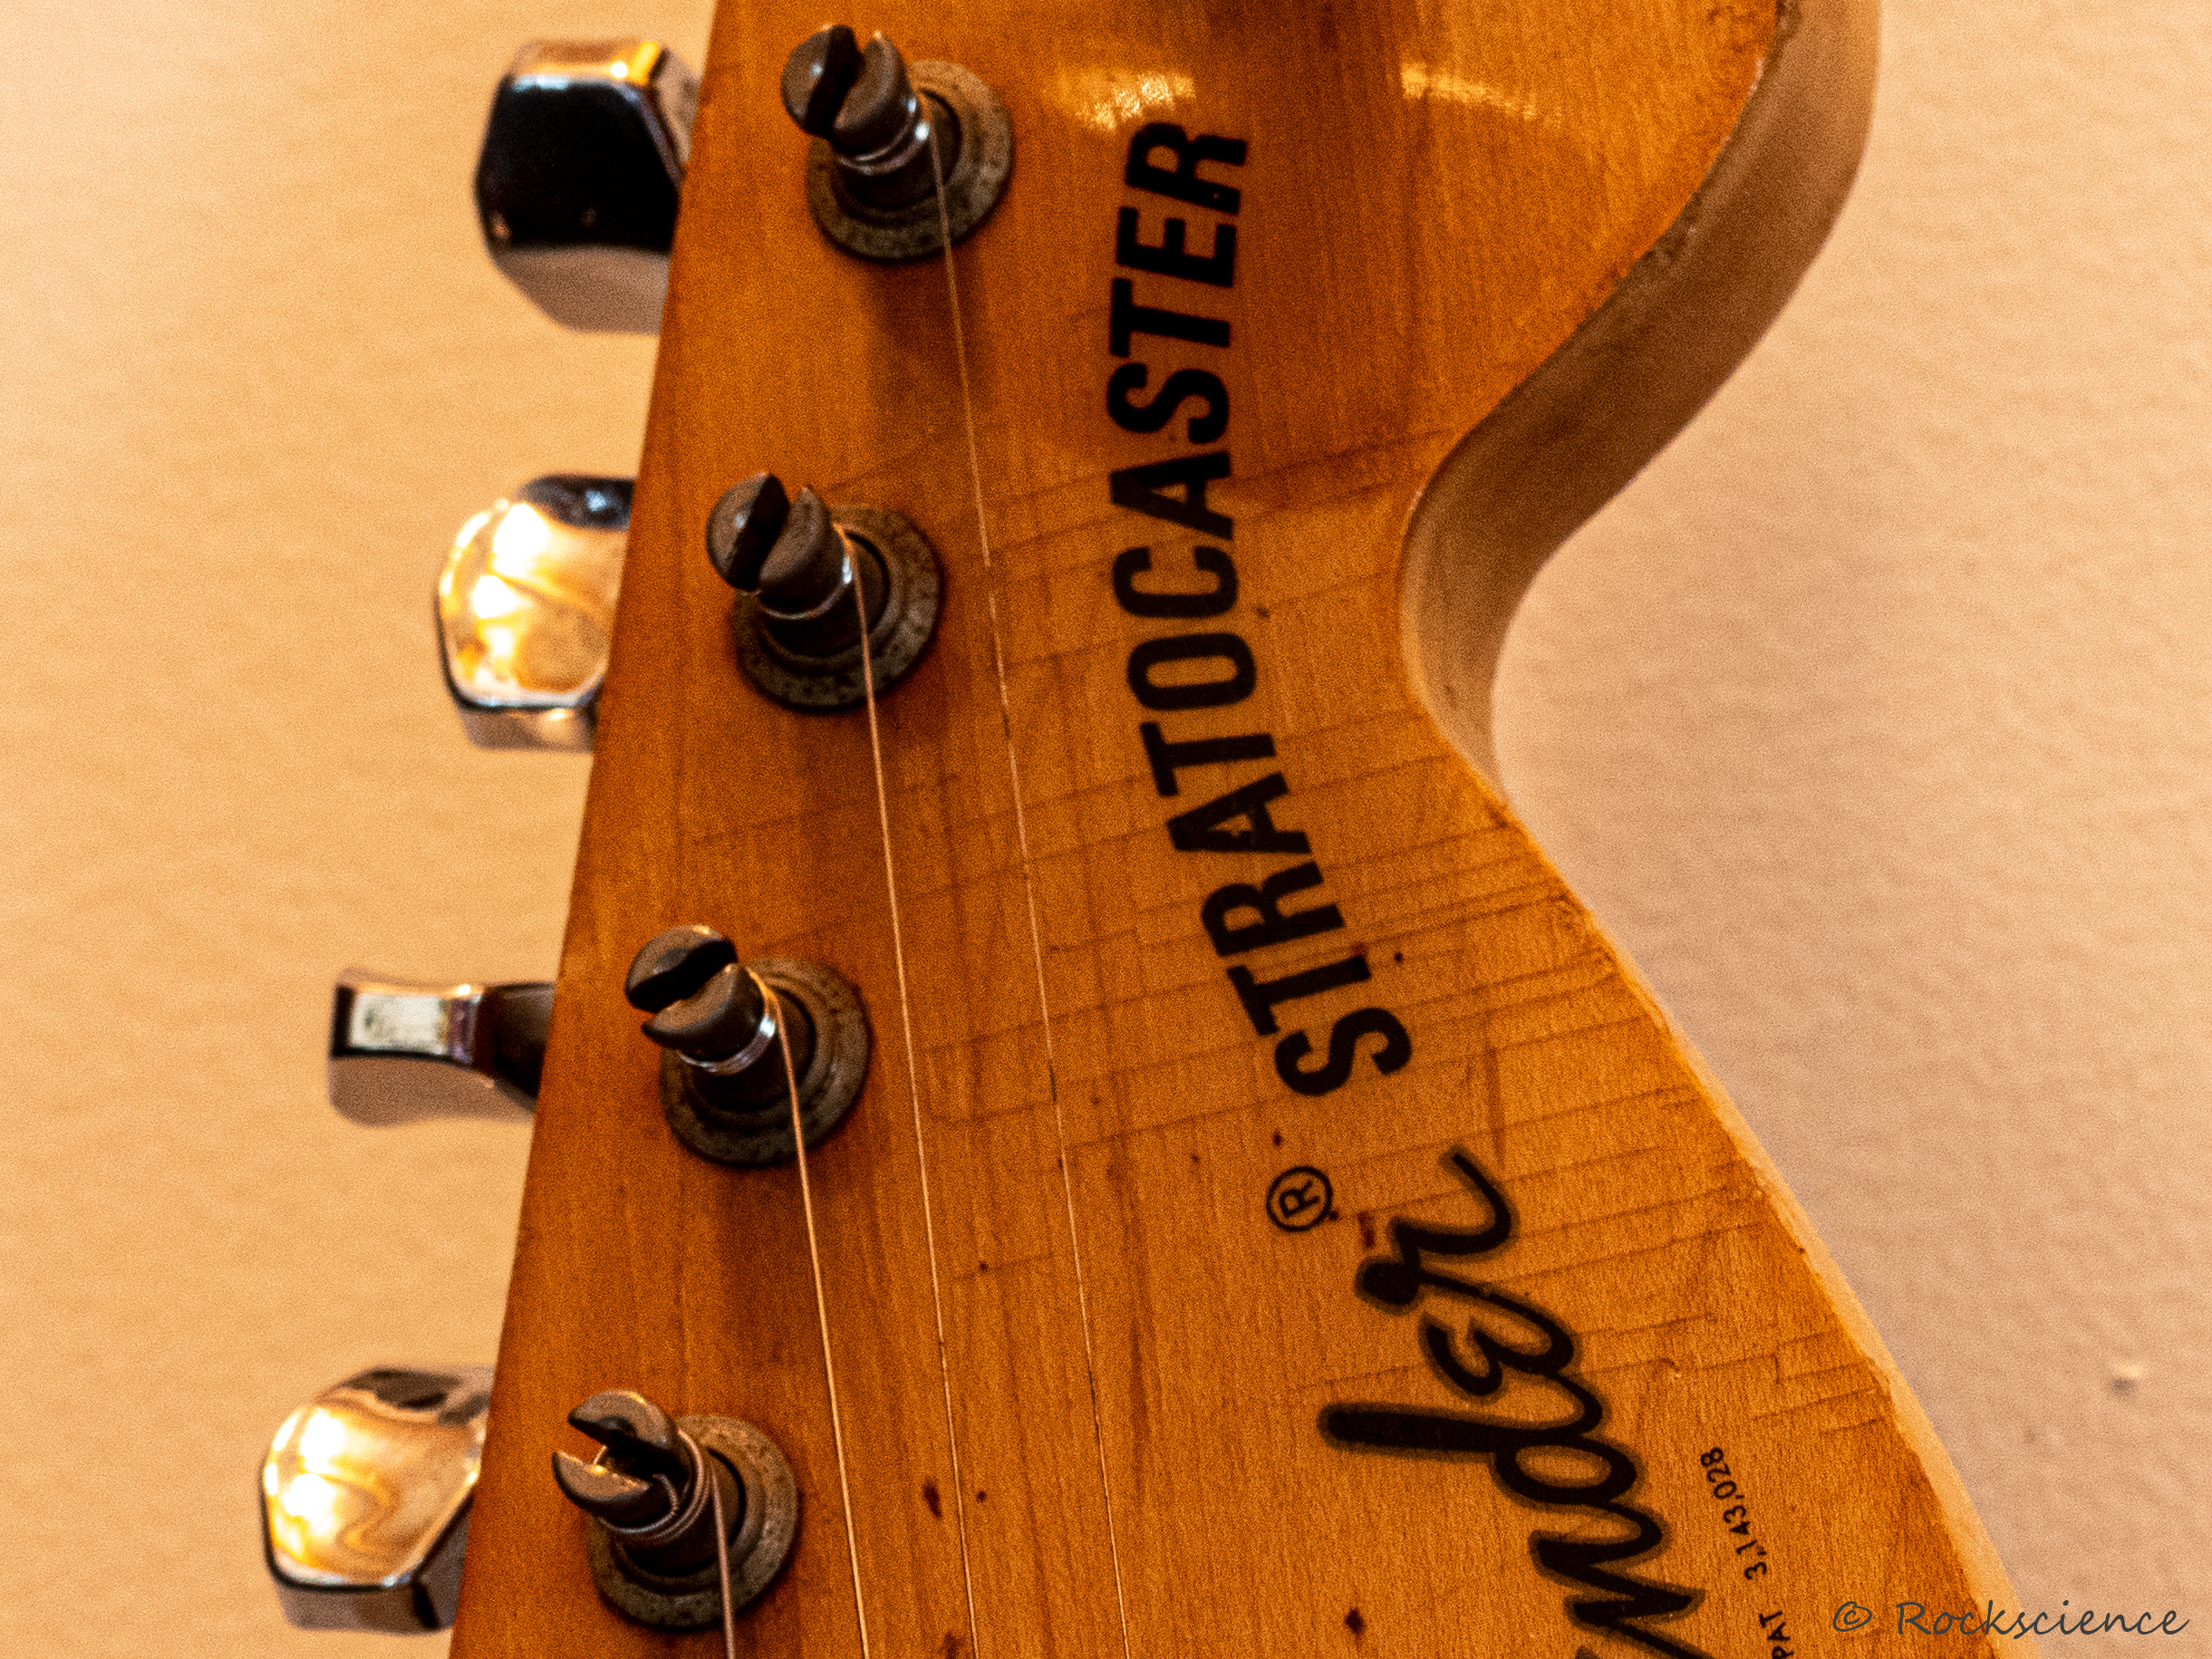 headstock of my 1974 stratocaster